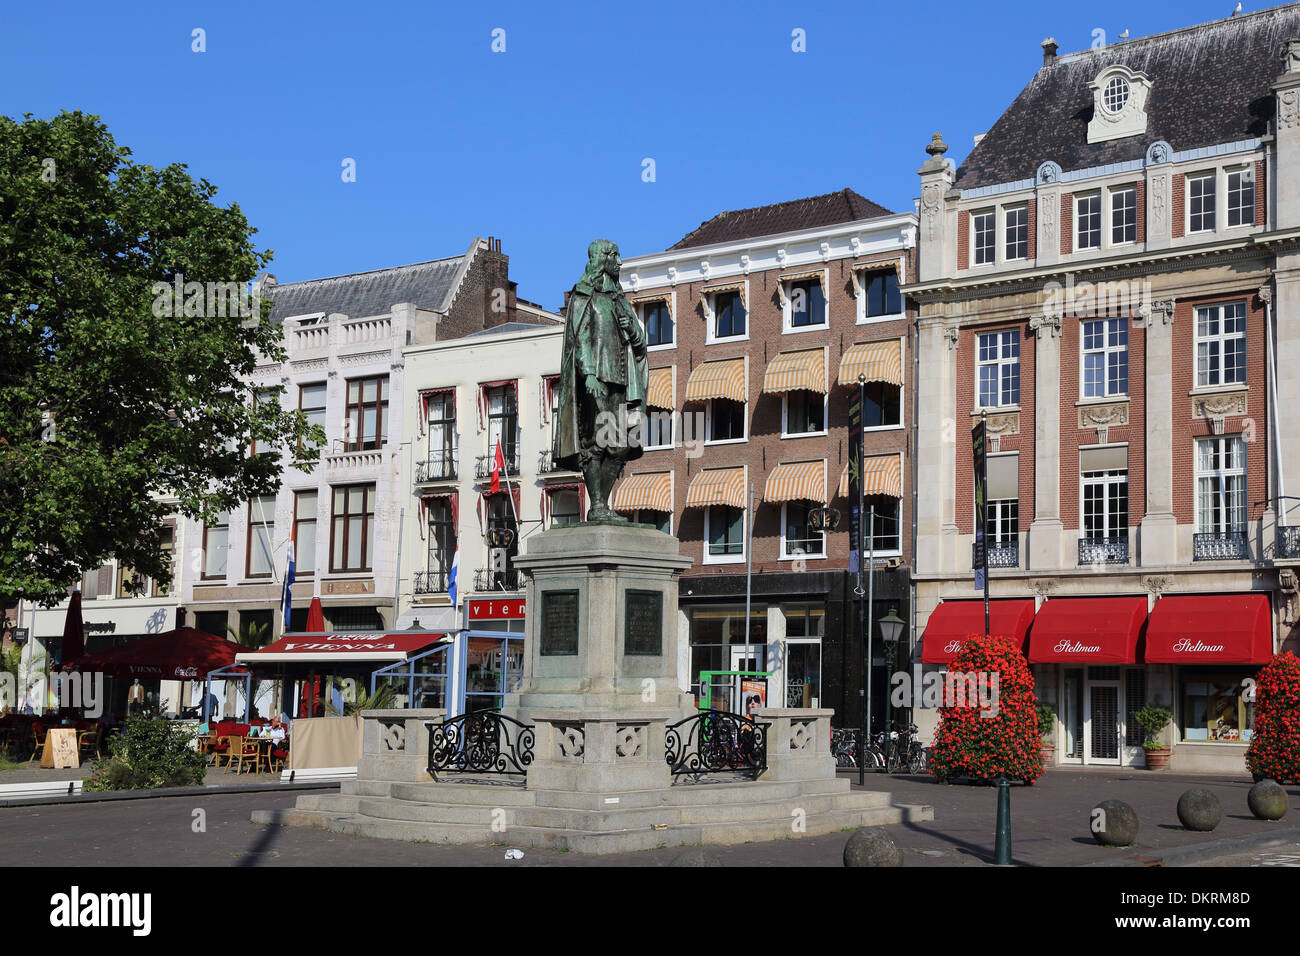 the Hague Netherlands Plaats Johan de Witt - Stock Image